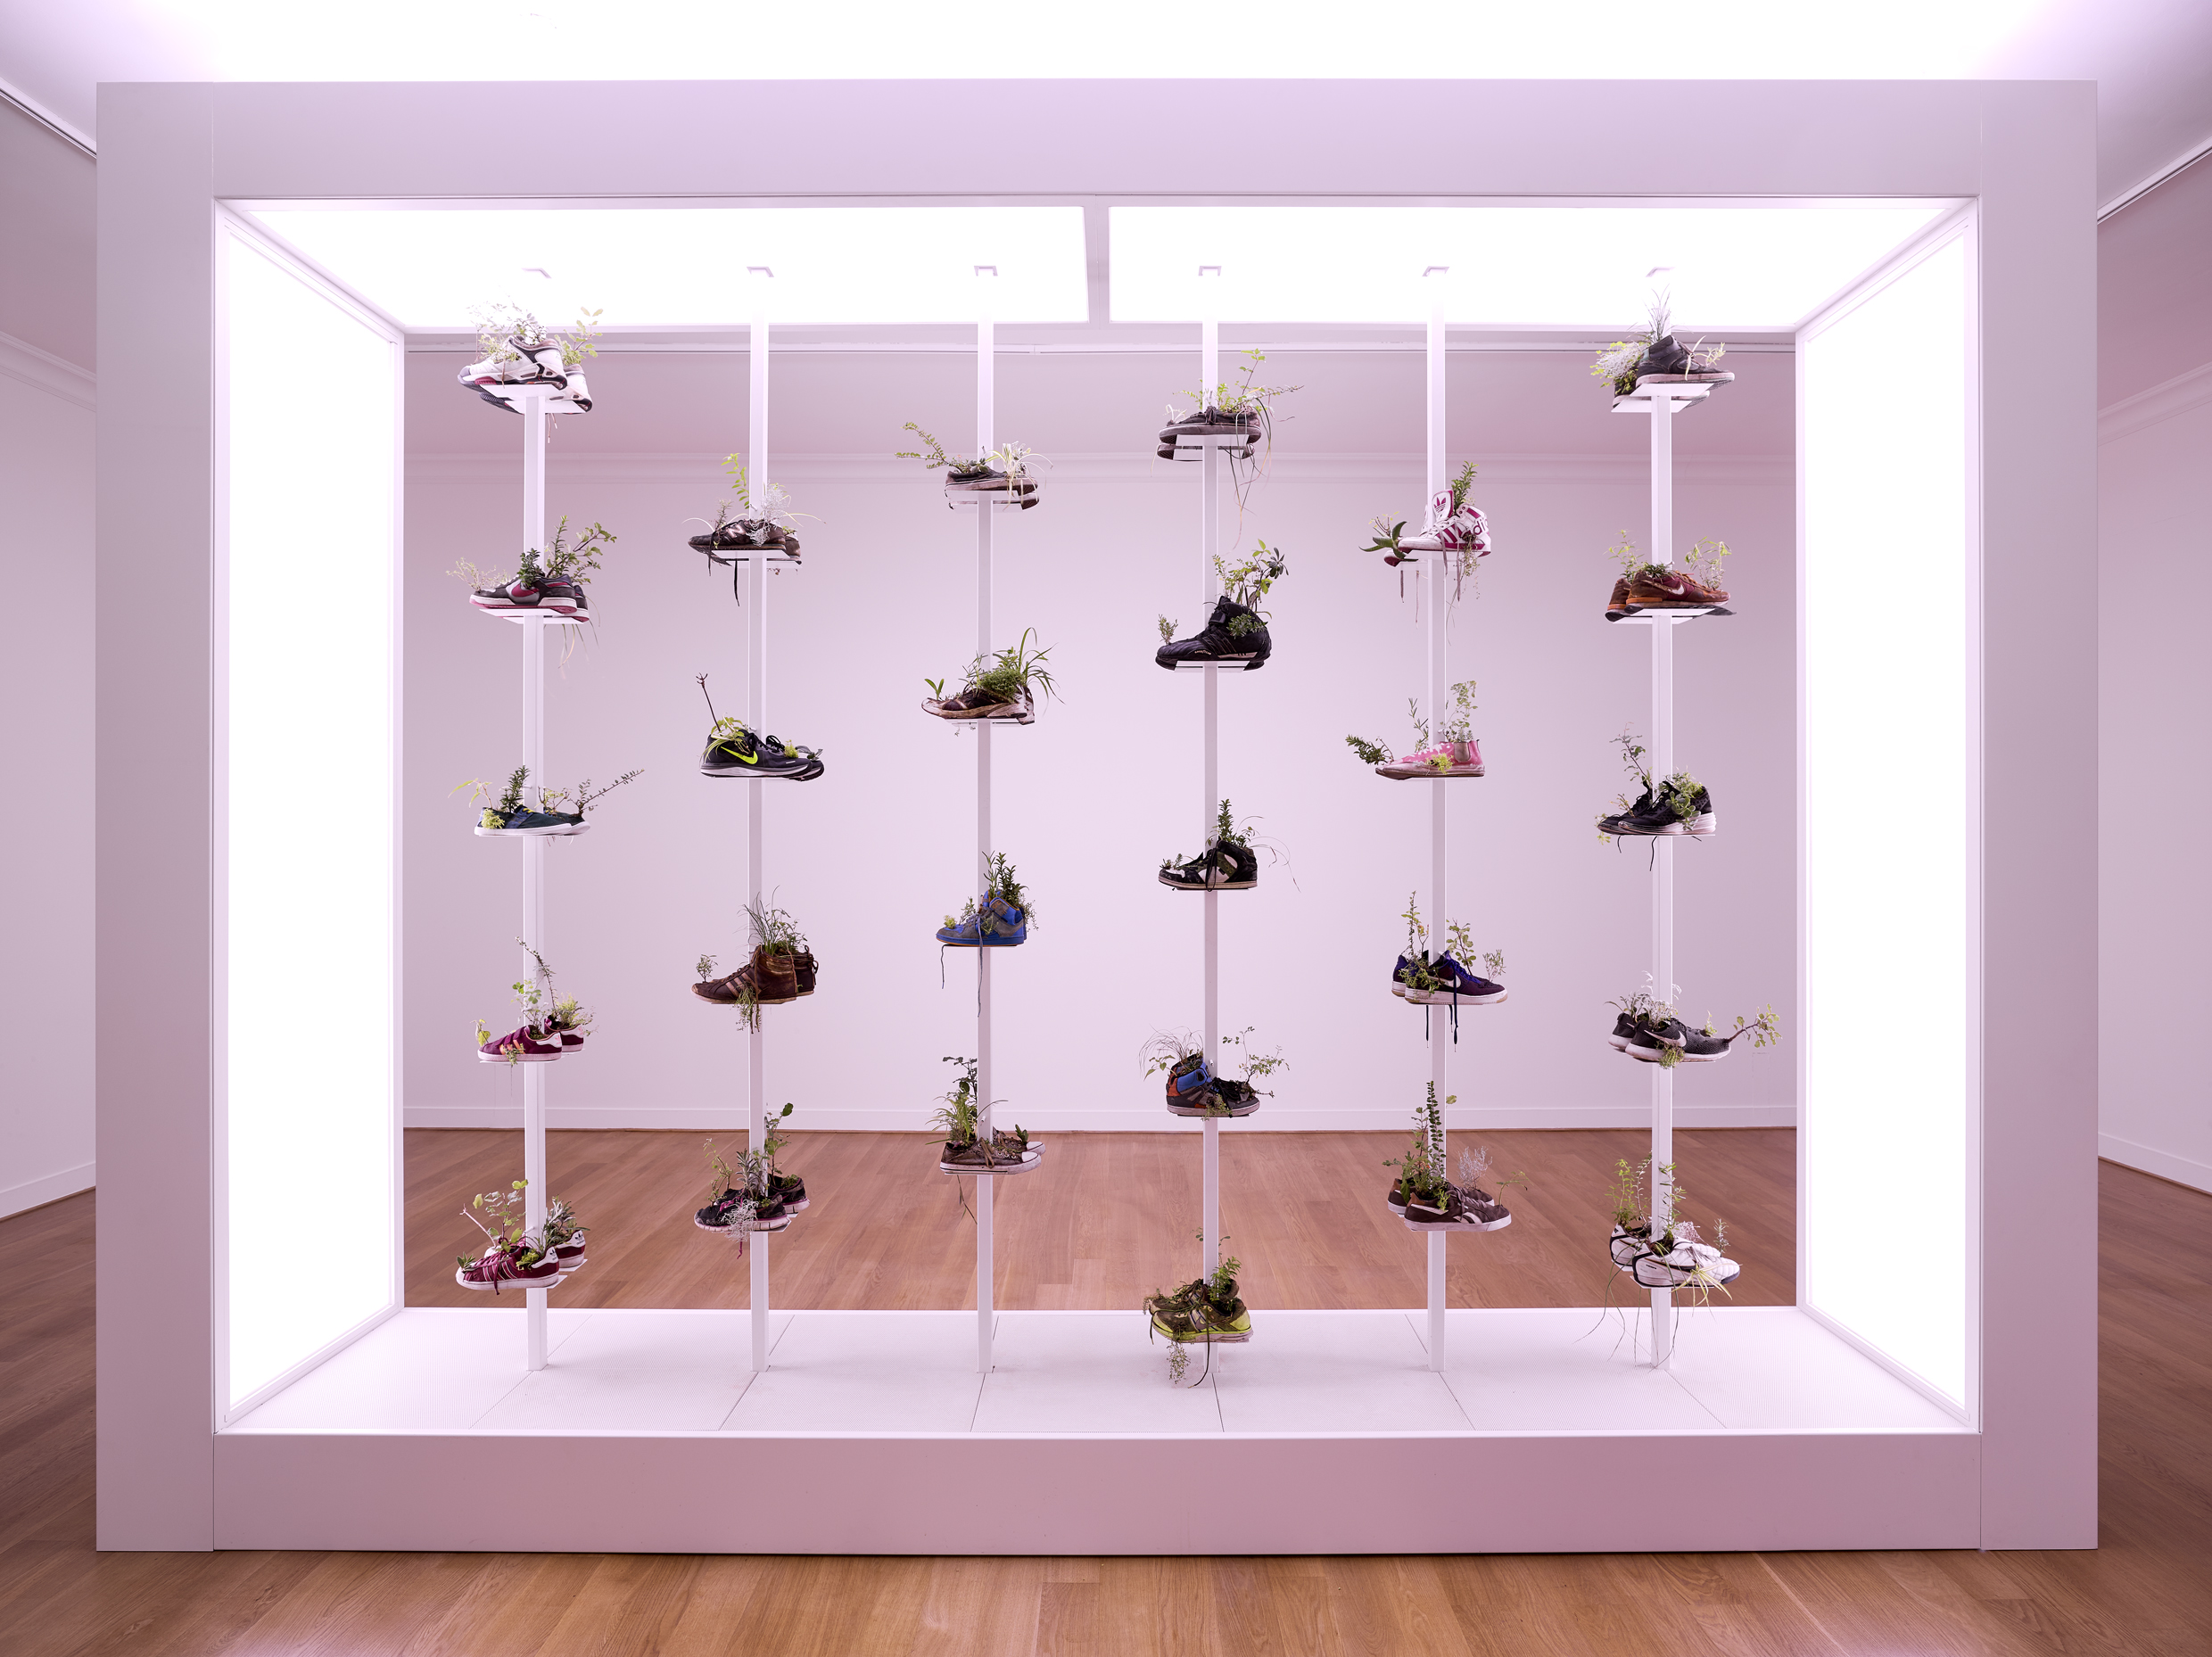 Collection de chaussures, de Michel Blazy